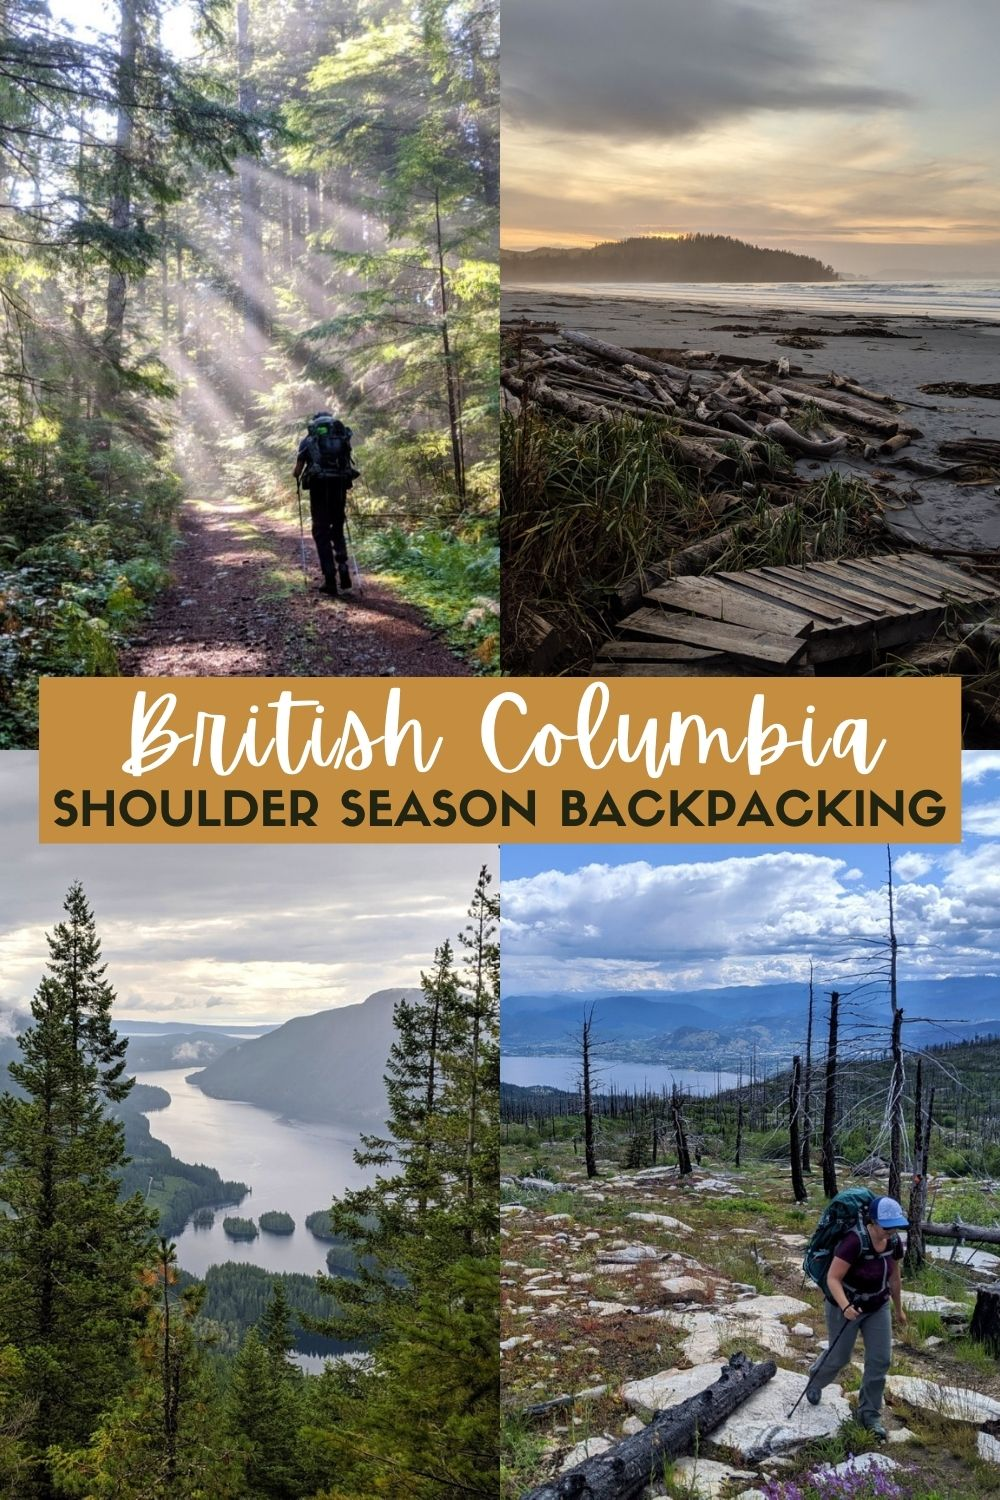 British Columbia is an amazing destination for backpacking but due to the mountainous terrain, it may seem that options for shoulder season are limited. Thankfully, this is not true! Click here to discover as many as 13 amazing shoulder season backpacking trips in BC, Canada! offtracktravel.ca